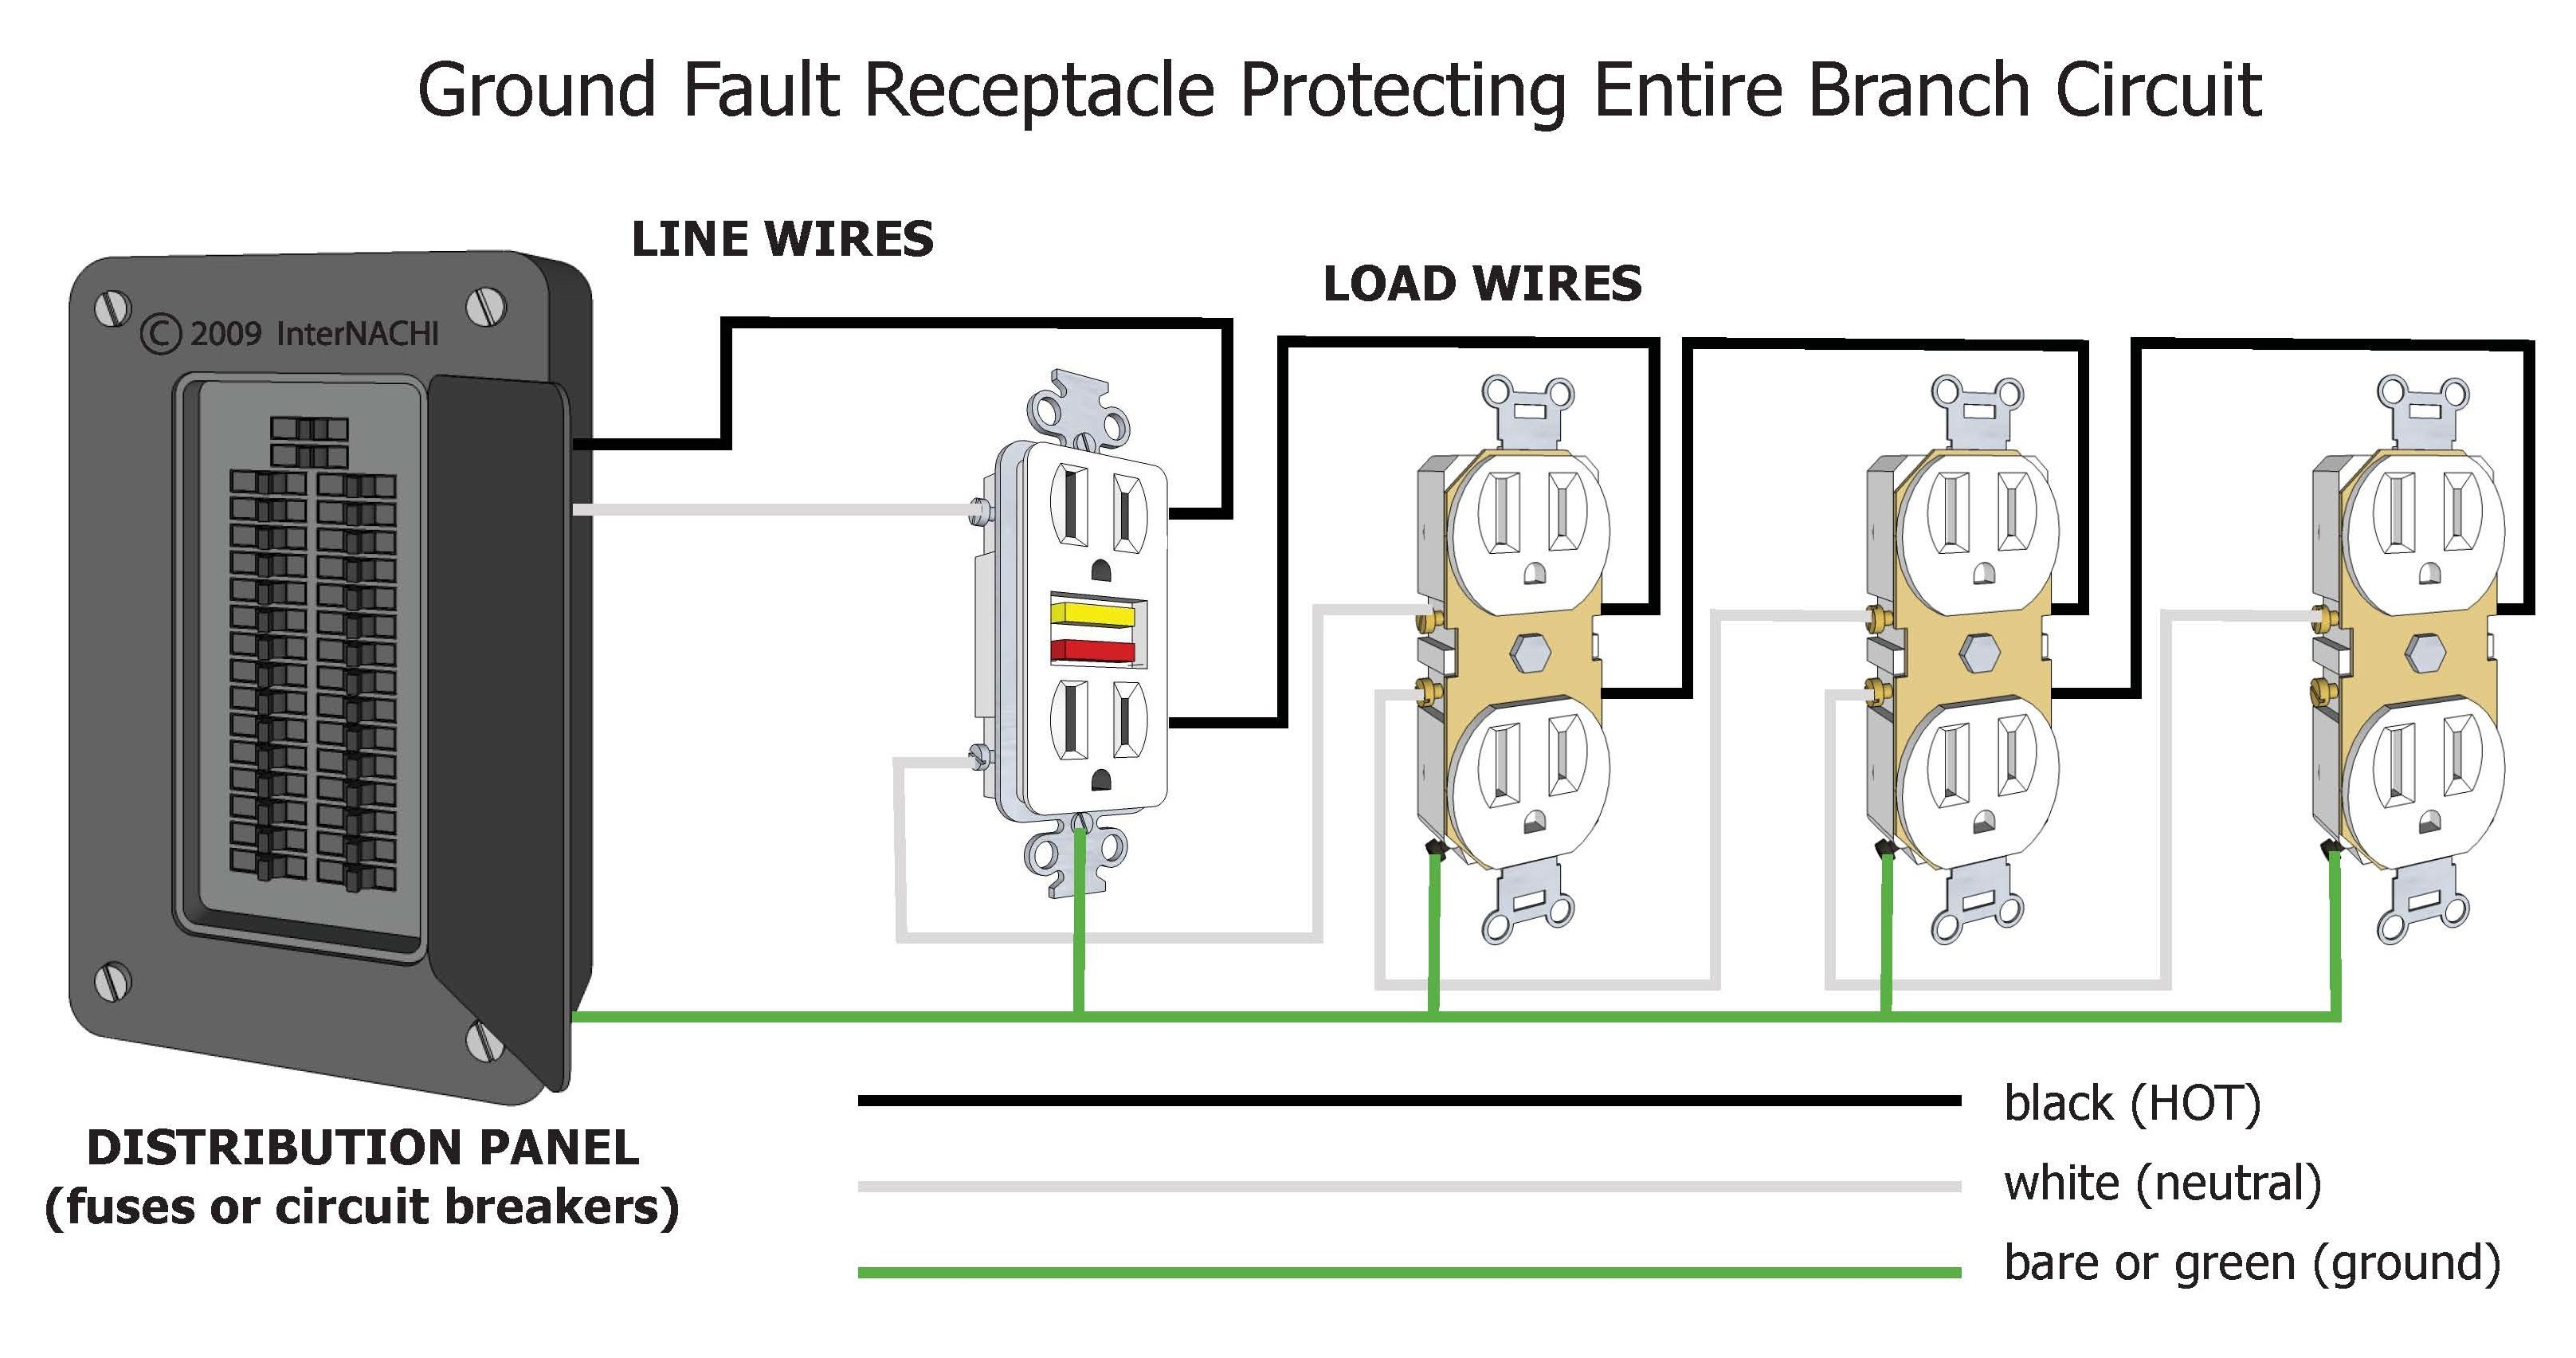 gfci branch circuit color gfci circuit breaker wiring diagram efcaviation com gfci breaker wiring diagram at bakdesigns.co